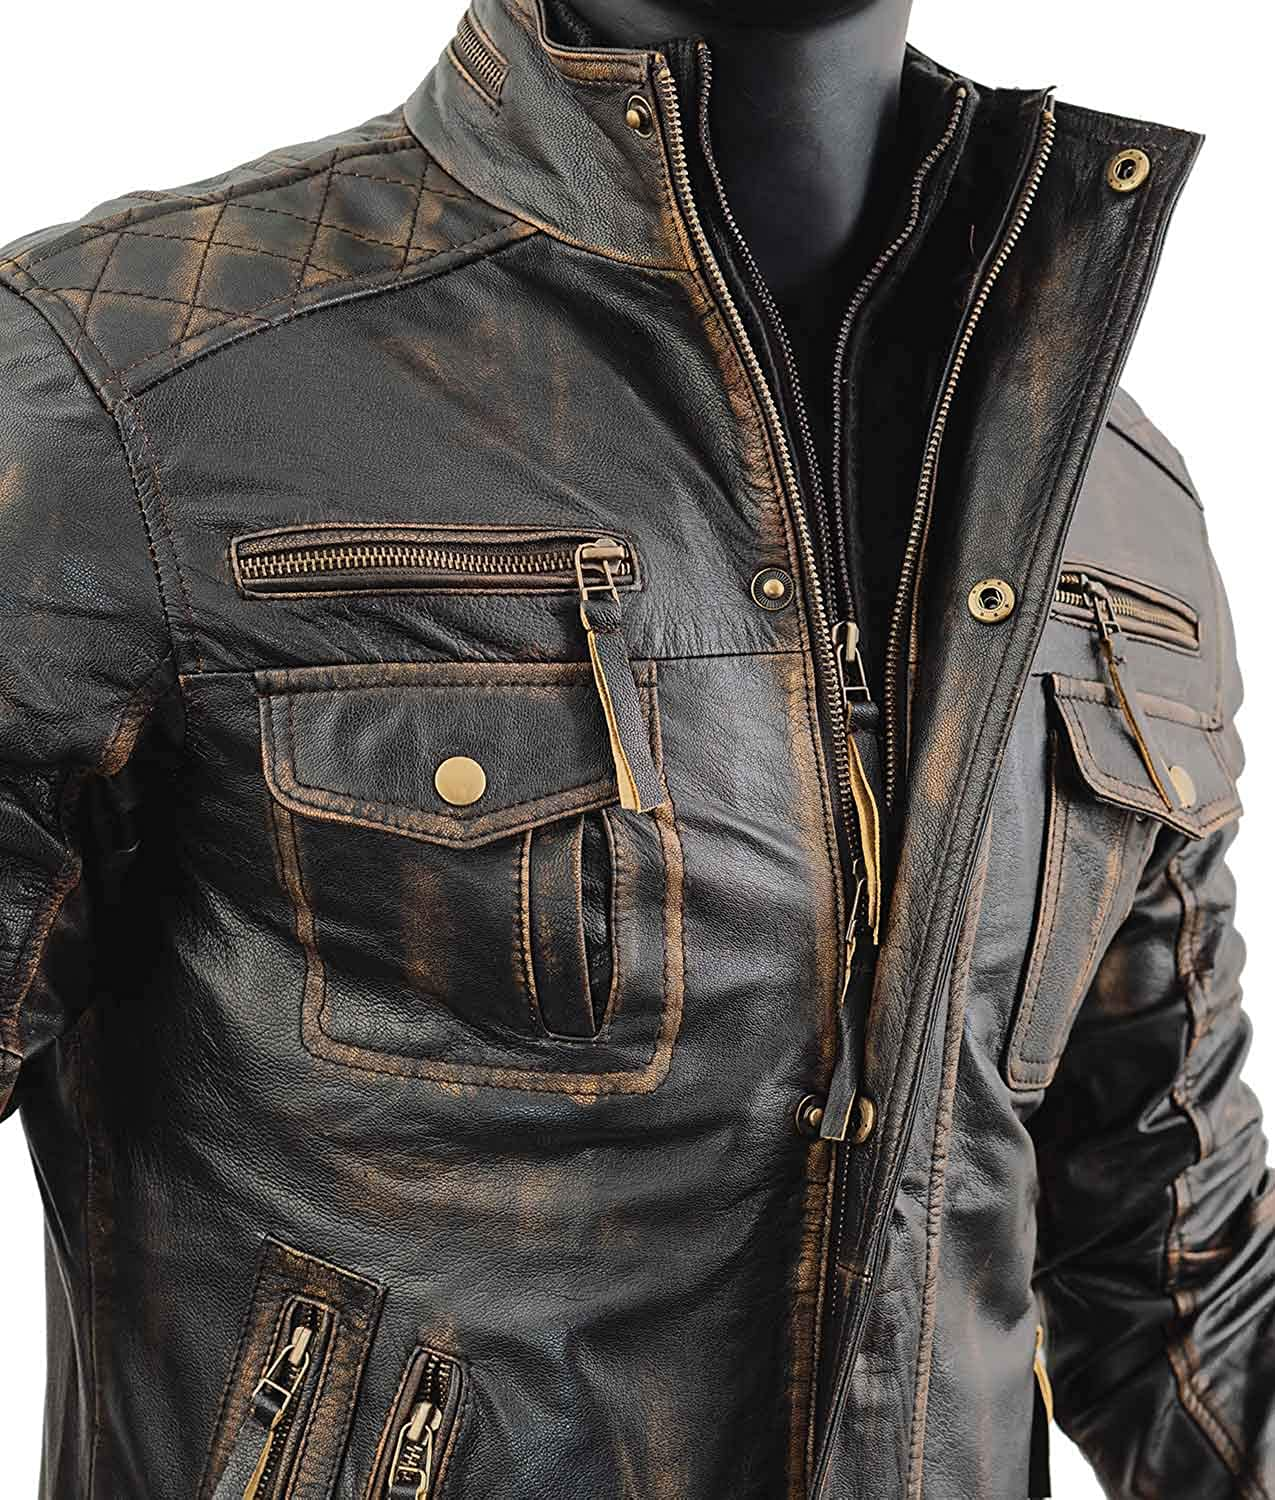 Abbraci Men/'s Motorcycle Biker Slim Fit Vintage Distressed Brown Cafe Racer Real Leather Jacket